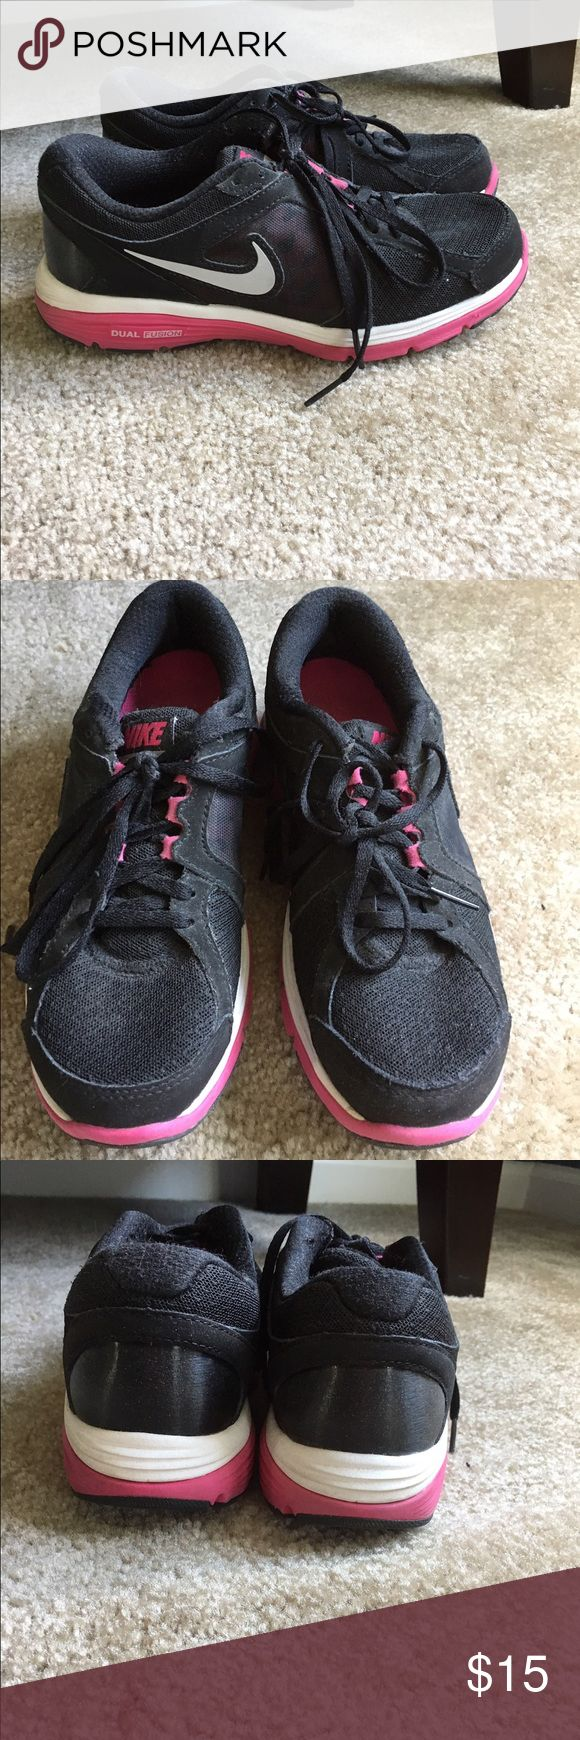 Nike Dual Fusion Run Size 6 Sneakers Black / Pink Nike Dual Fusion Run Size 6 Sneakers Used but good condition Black Hot Pink Smoke Free Home Nike Shoes Sneakers